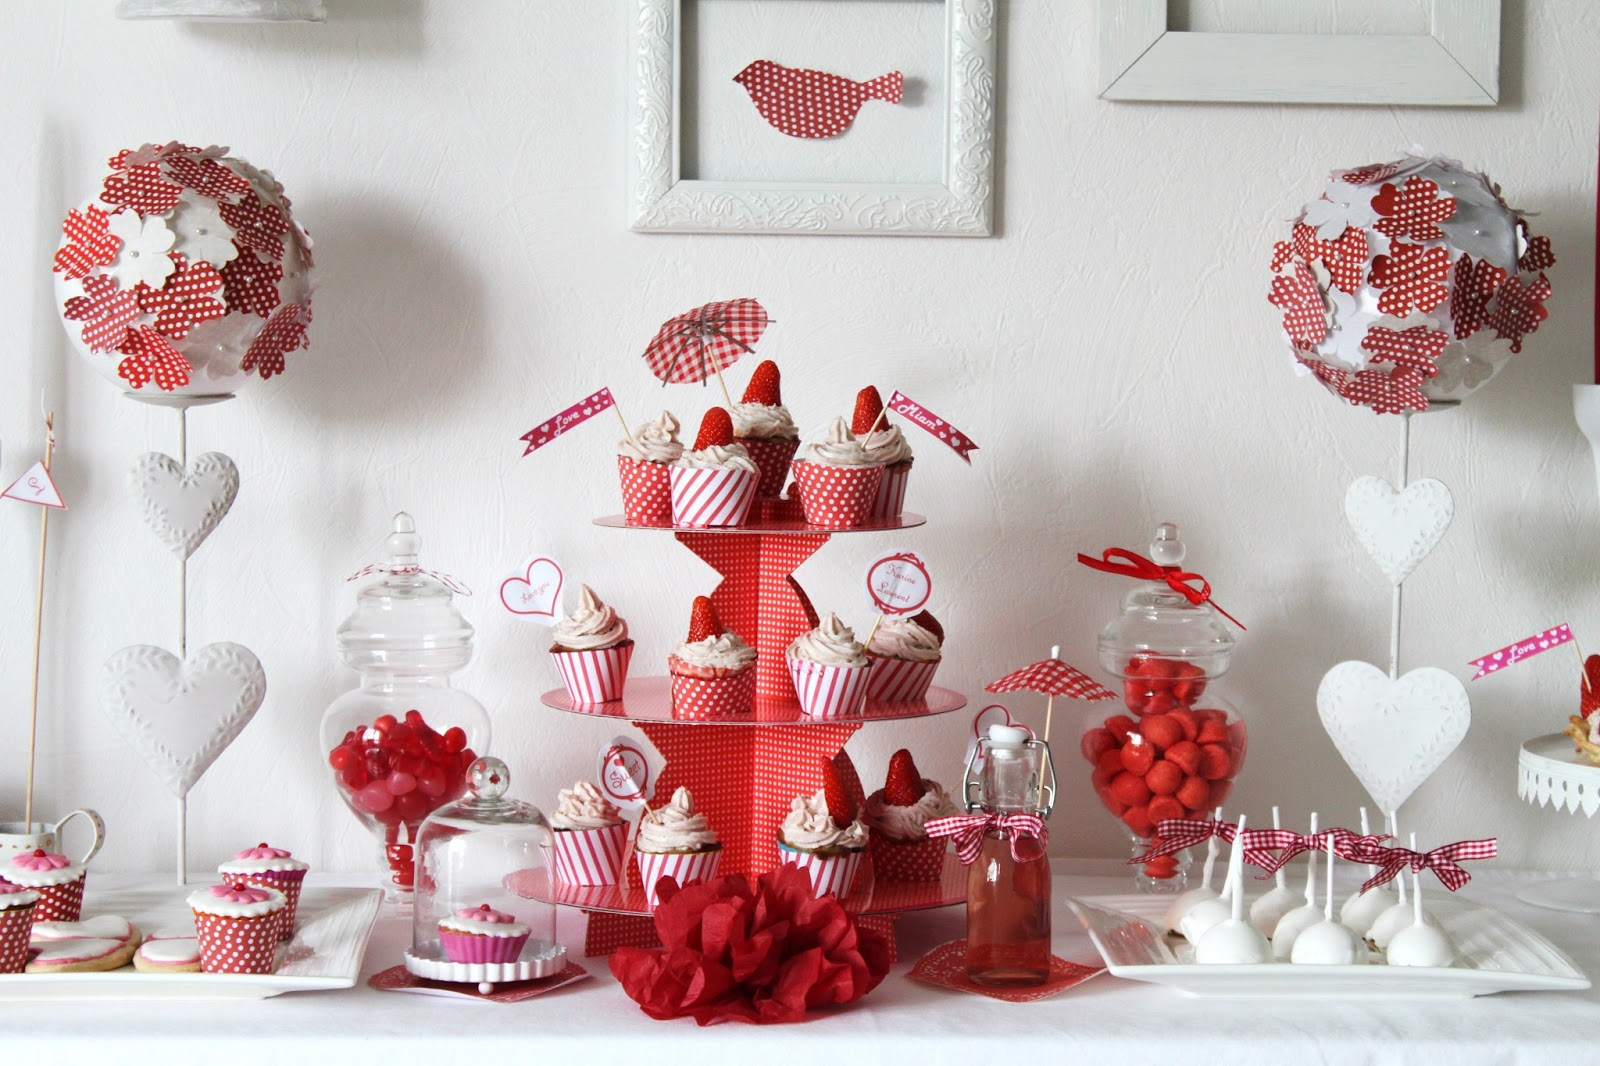 Sweet table fraise vichy rouge le candy bar - Decoration table anniversaire rouge et noir ...